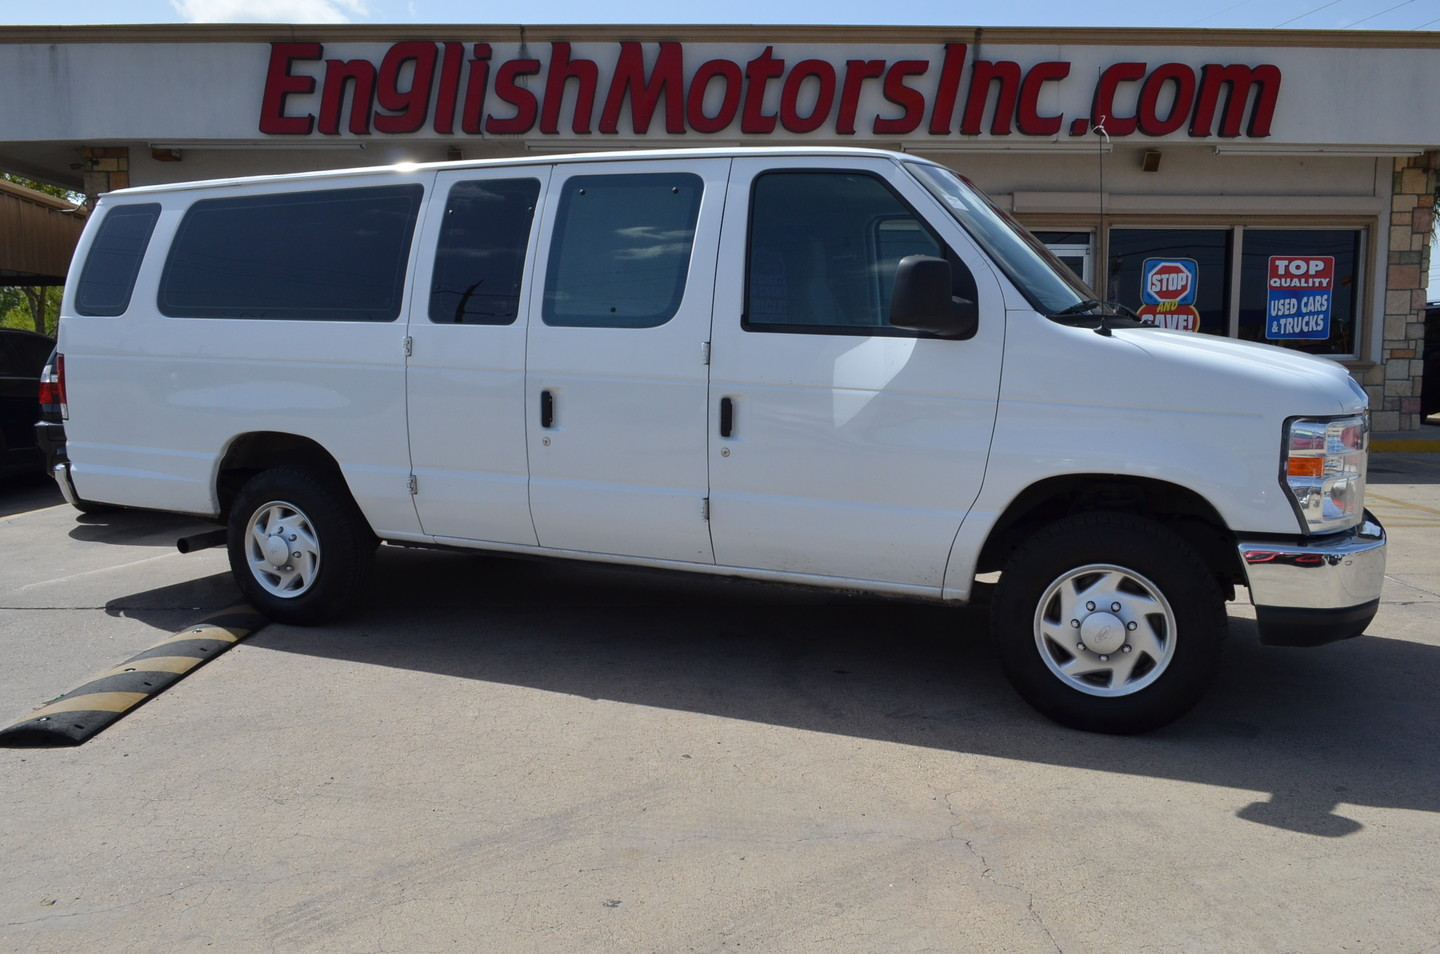 2012 ford e series wagon xlt brownsville tx english motors for English motors inc brownsville tx